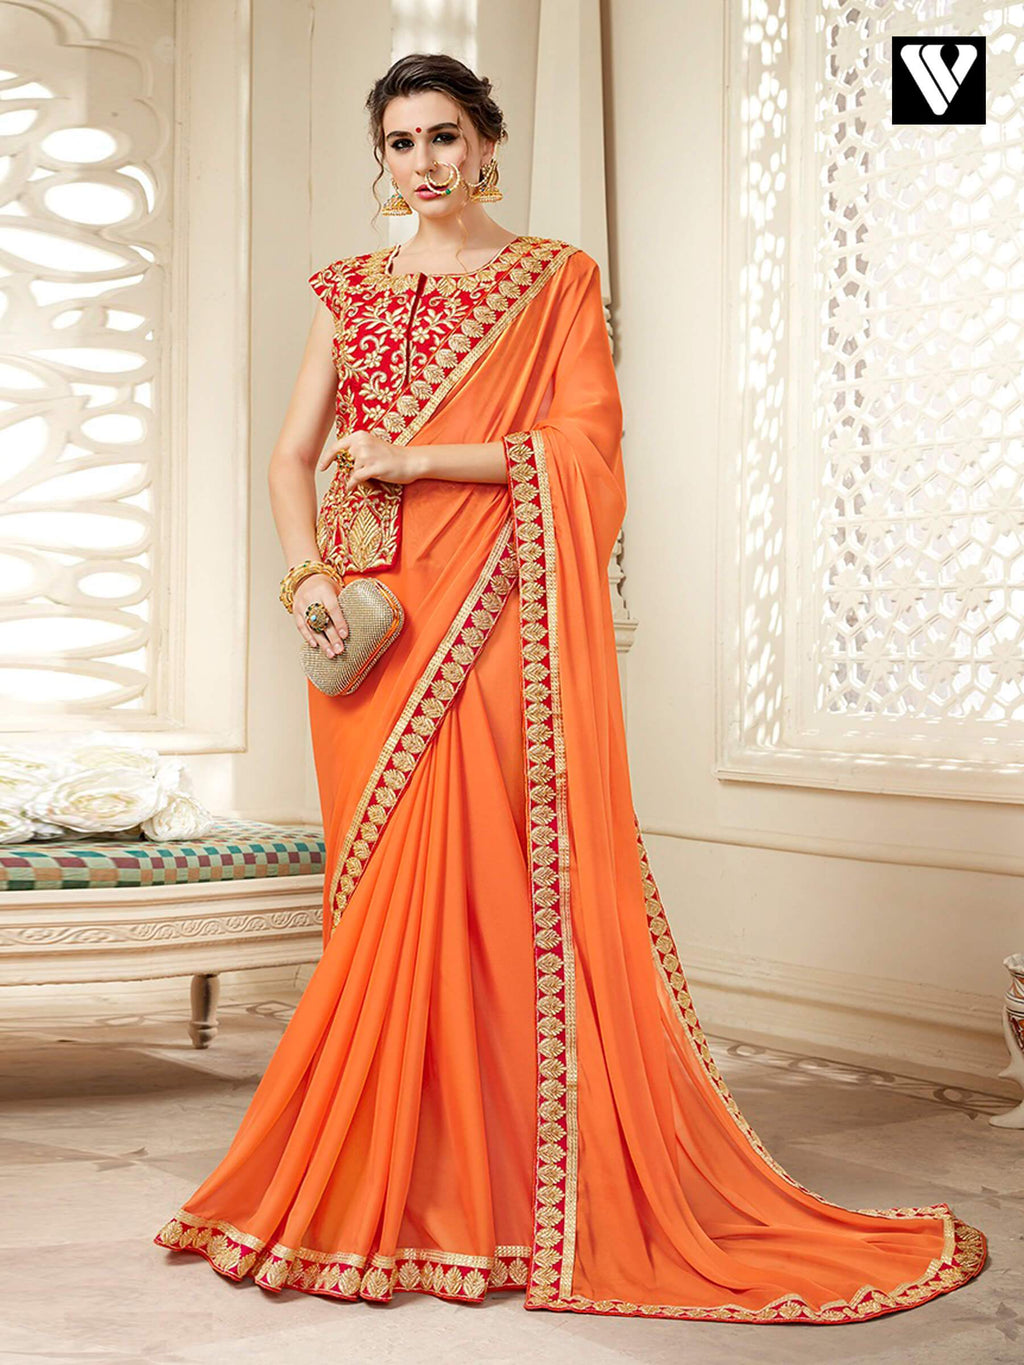 Designer Georgette Plain Saree with Lace Border and Embroidered Long Blouse